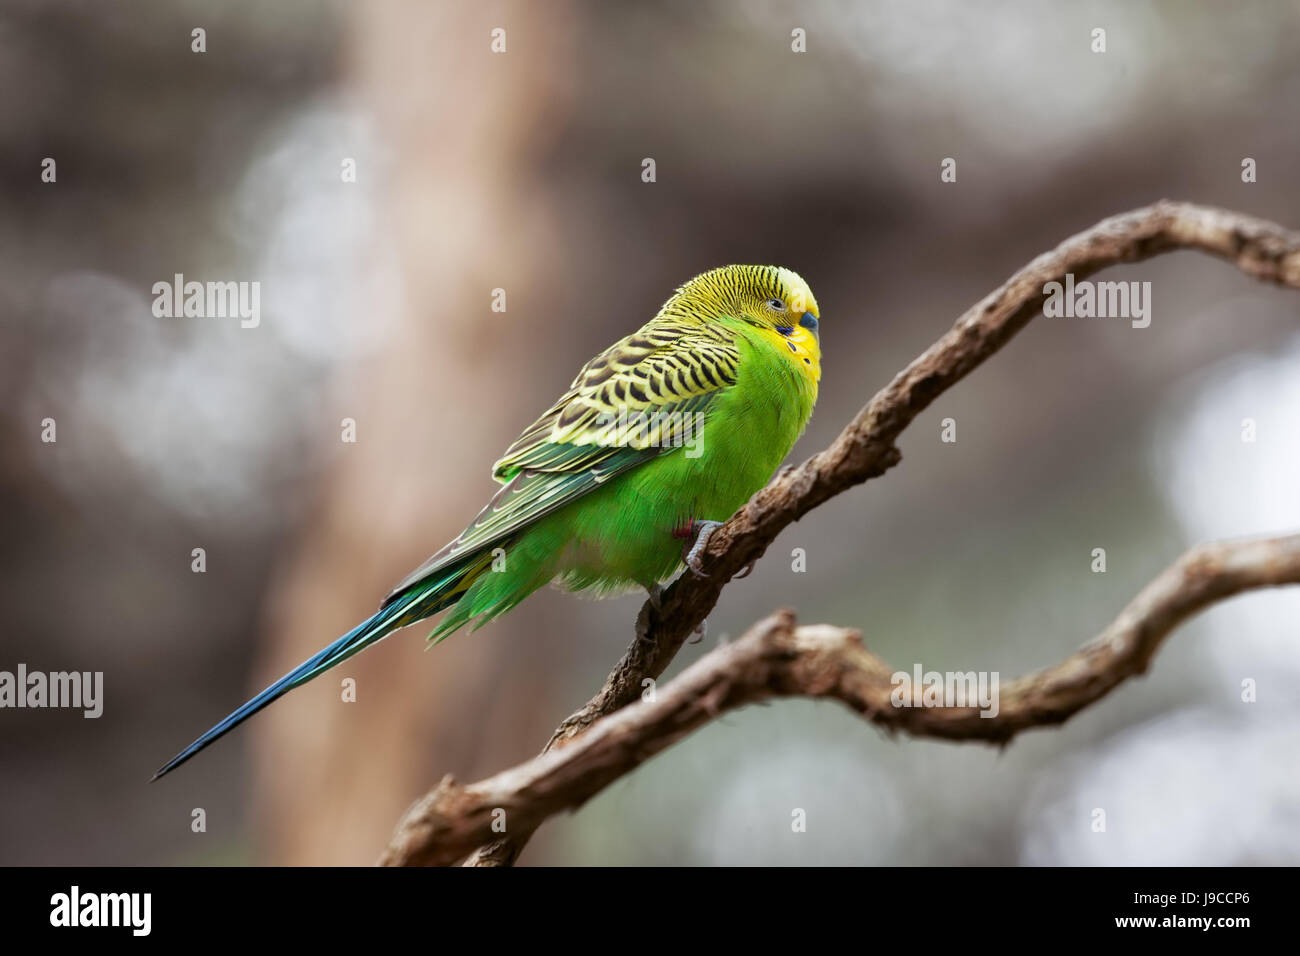 Perruche ondulée - chanson parrot perching on tree branch closeup Photo Stock